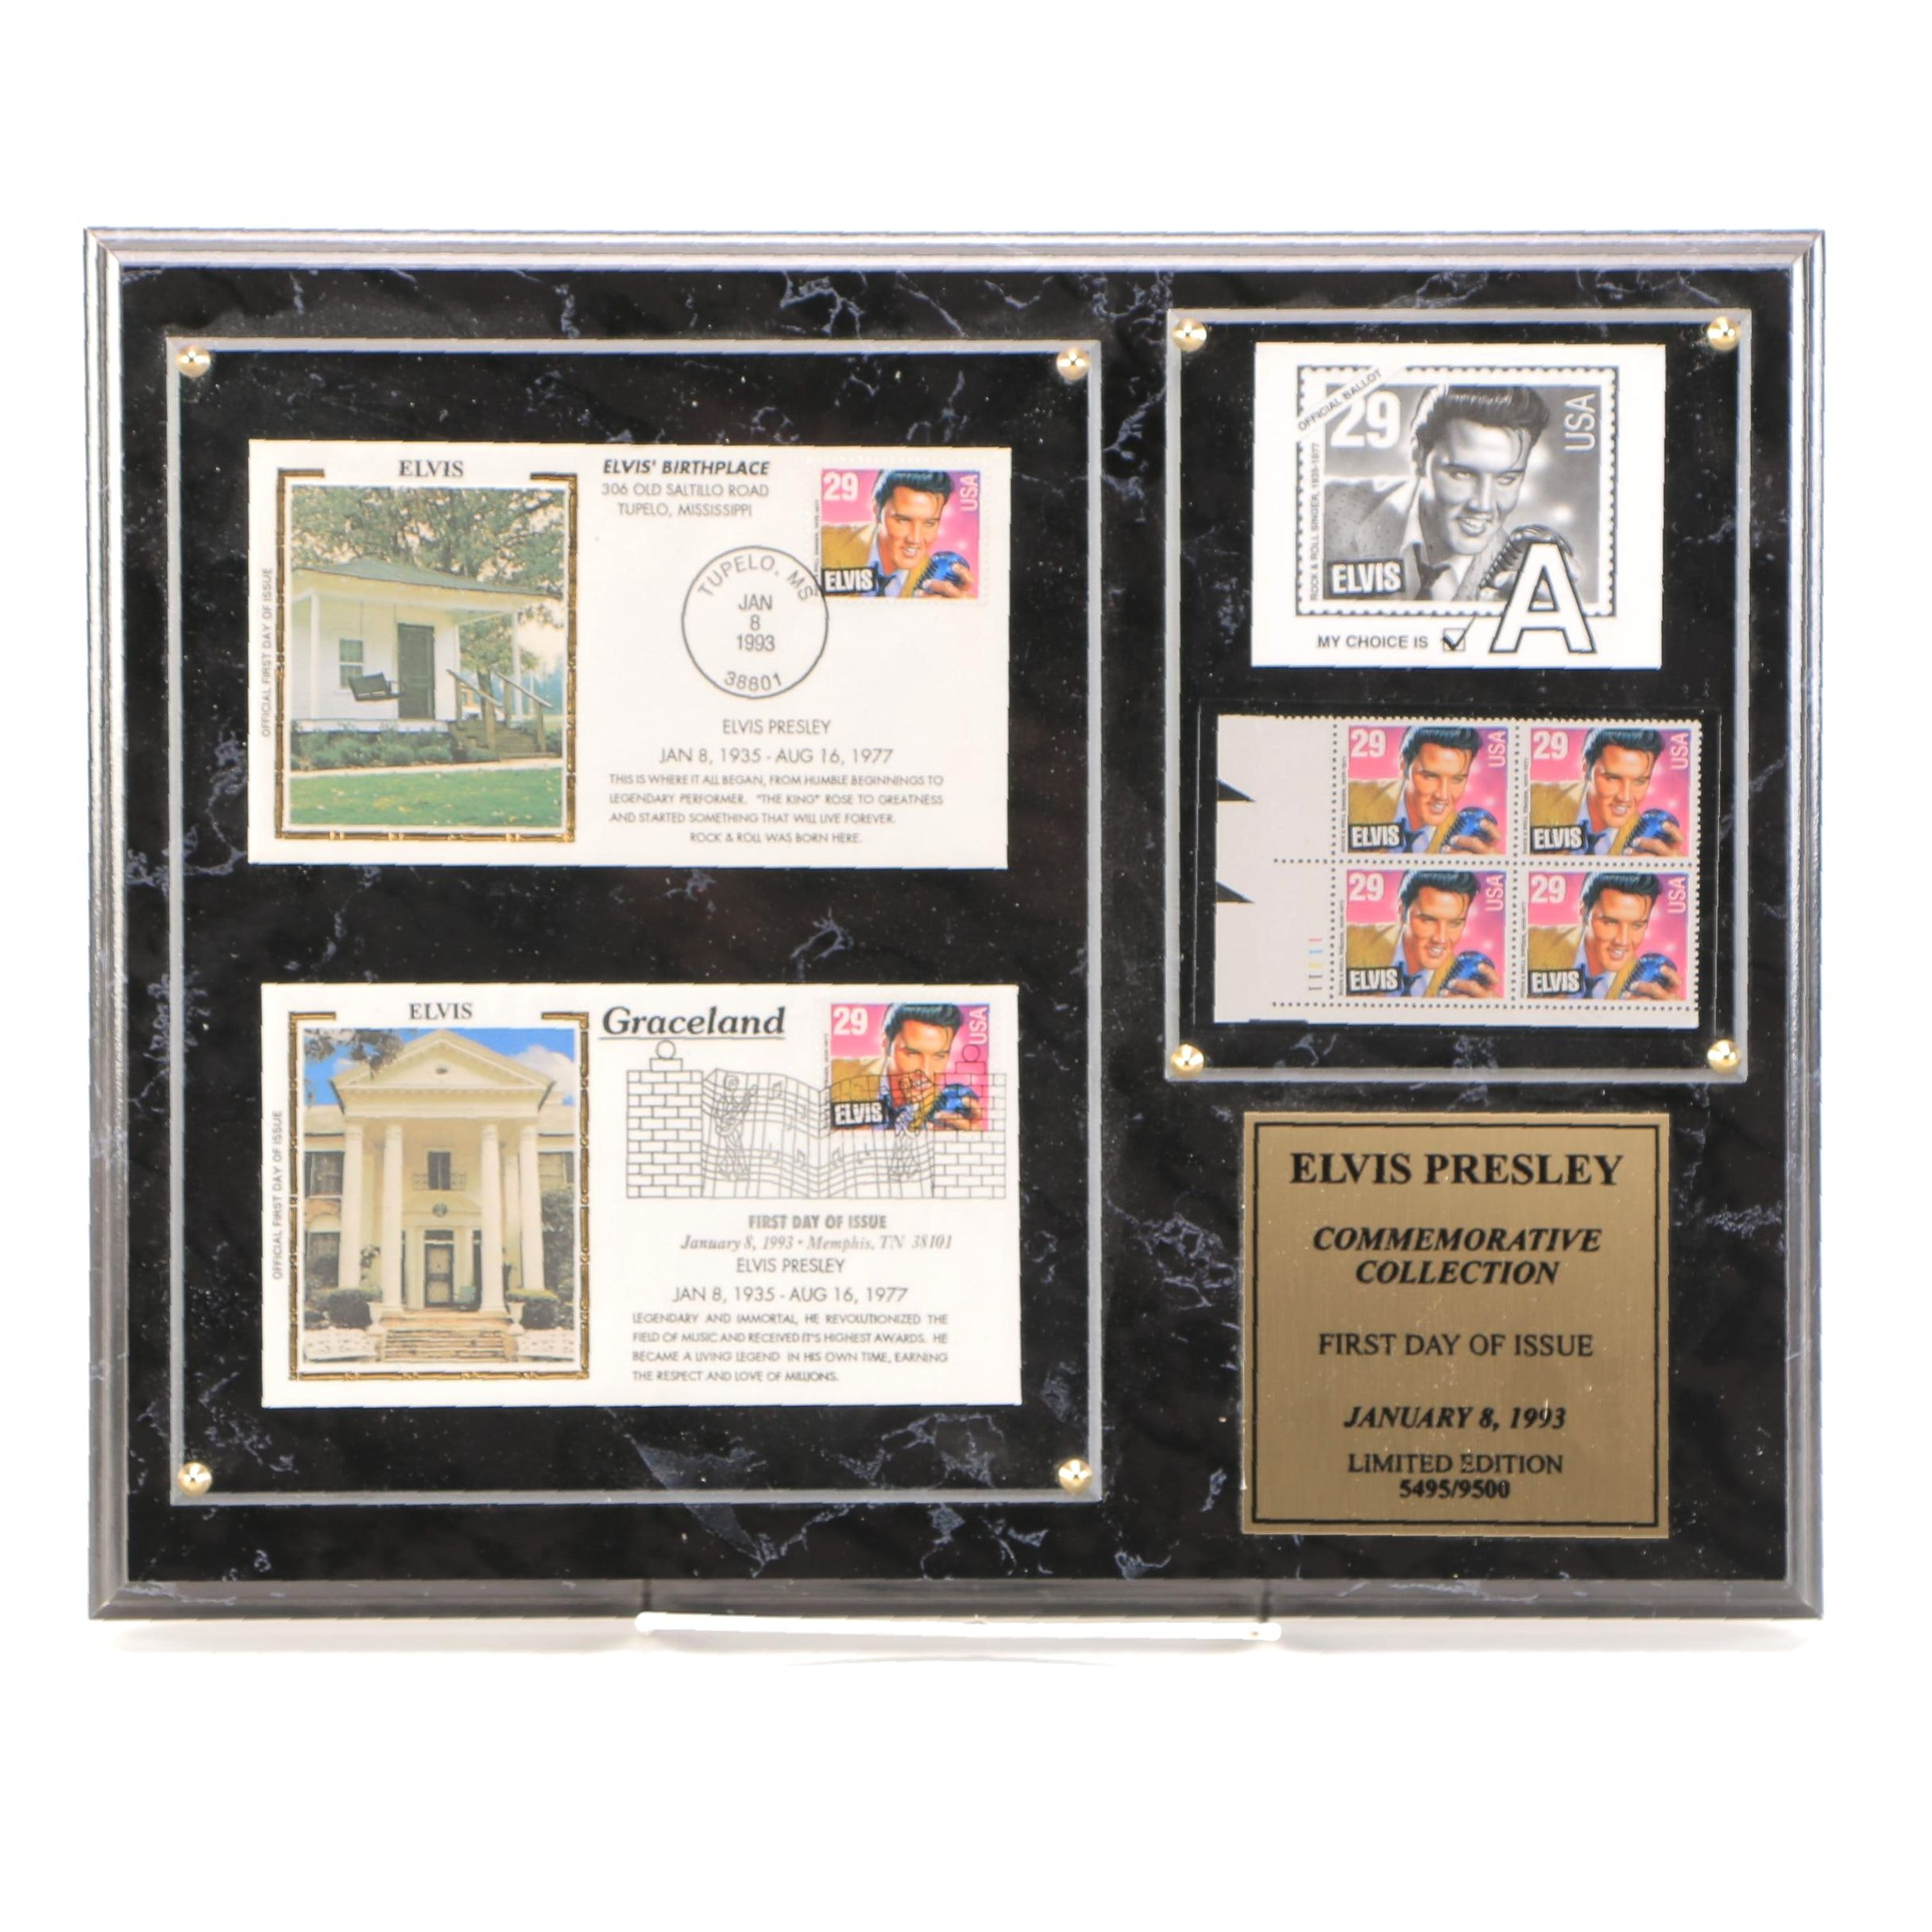 Elvis Presley Limited Edition Commemorative Collection